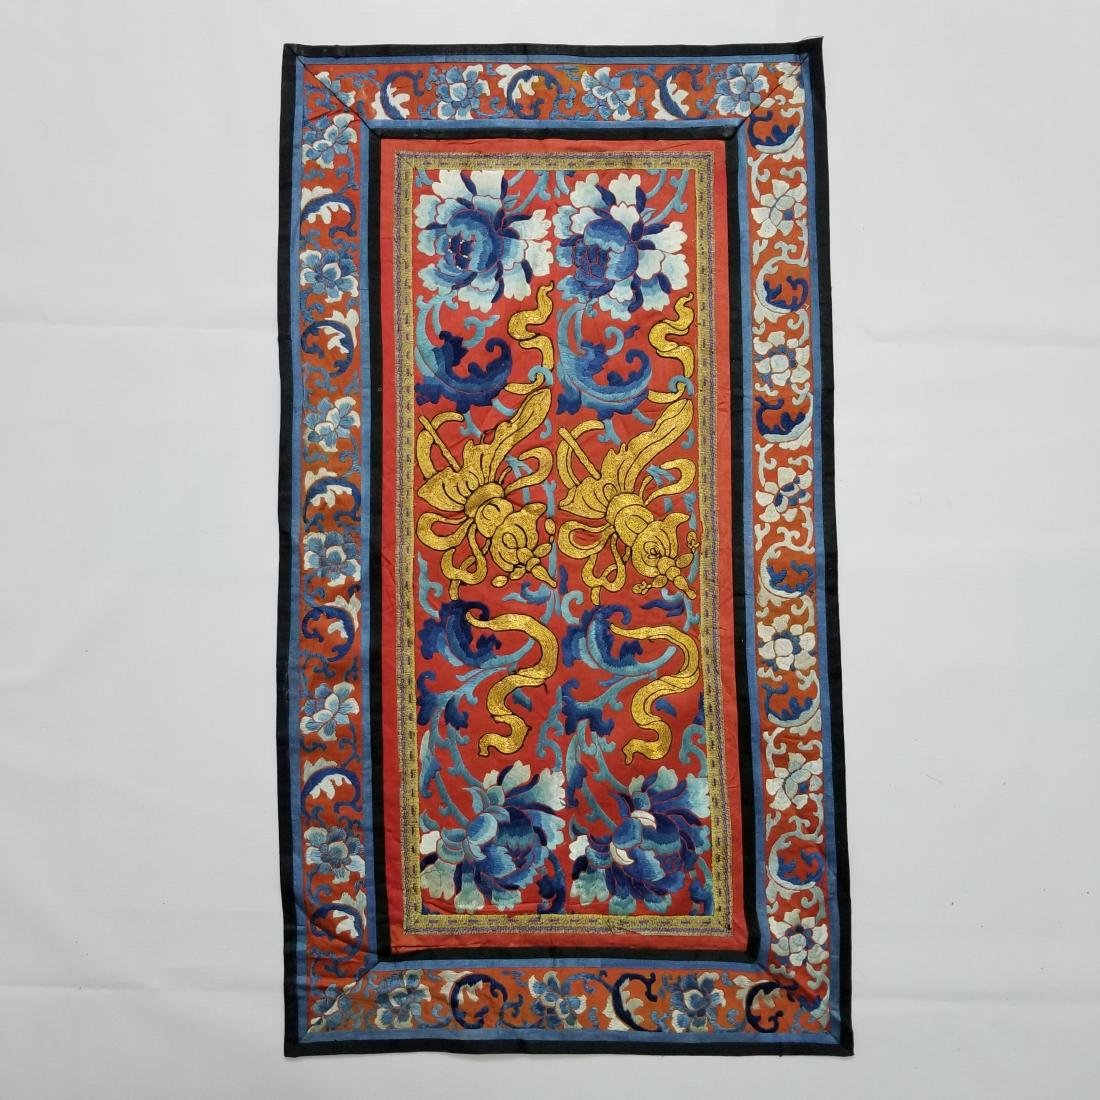 Antique Chinese Silk Embroidered Panel with Gold Thread